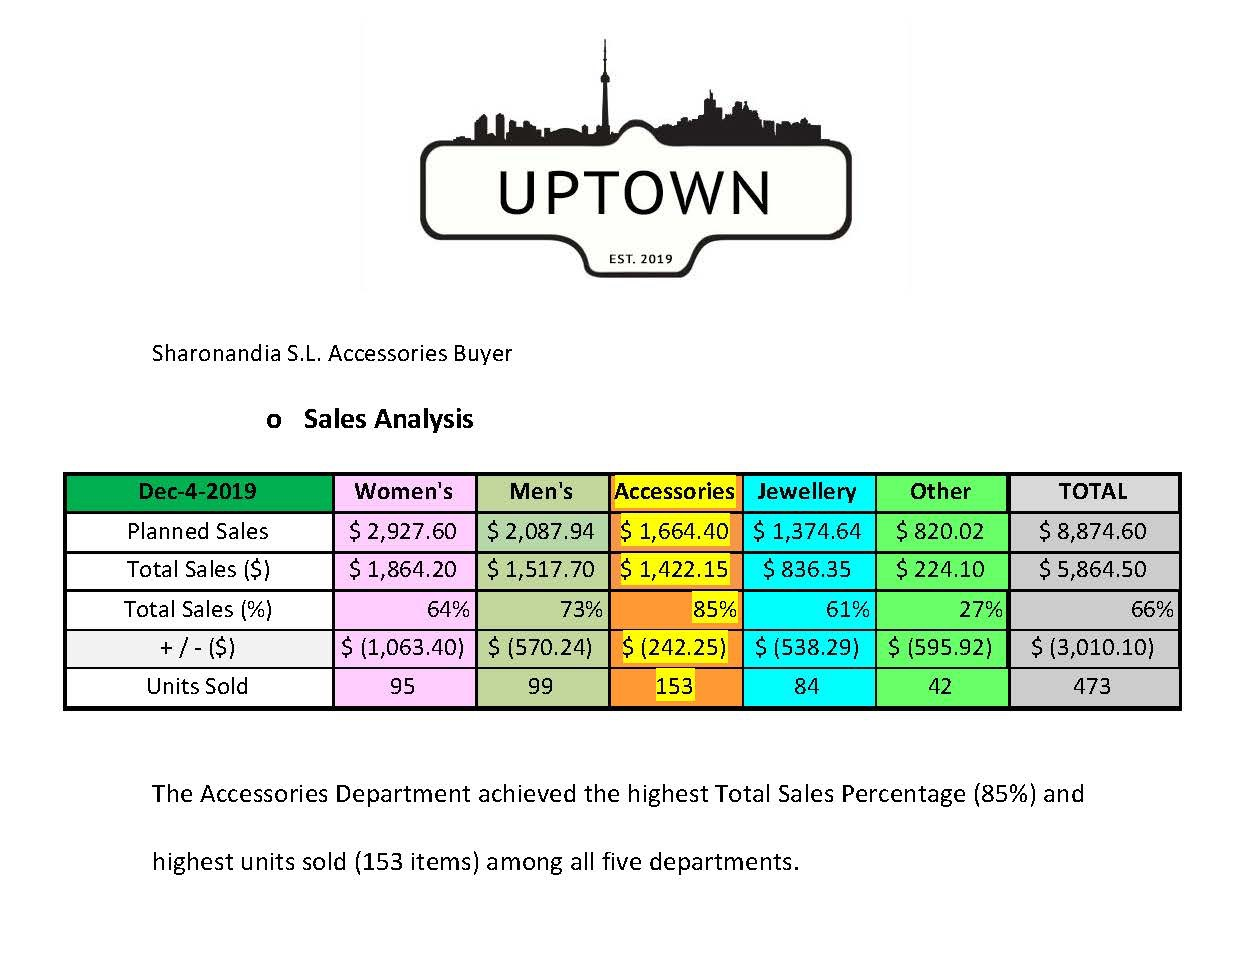 uptown sales buyer analysis data end of 2019